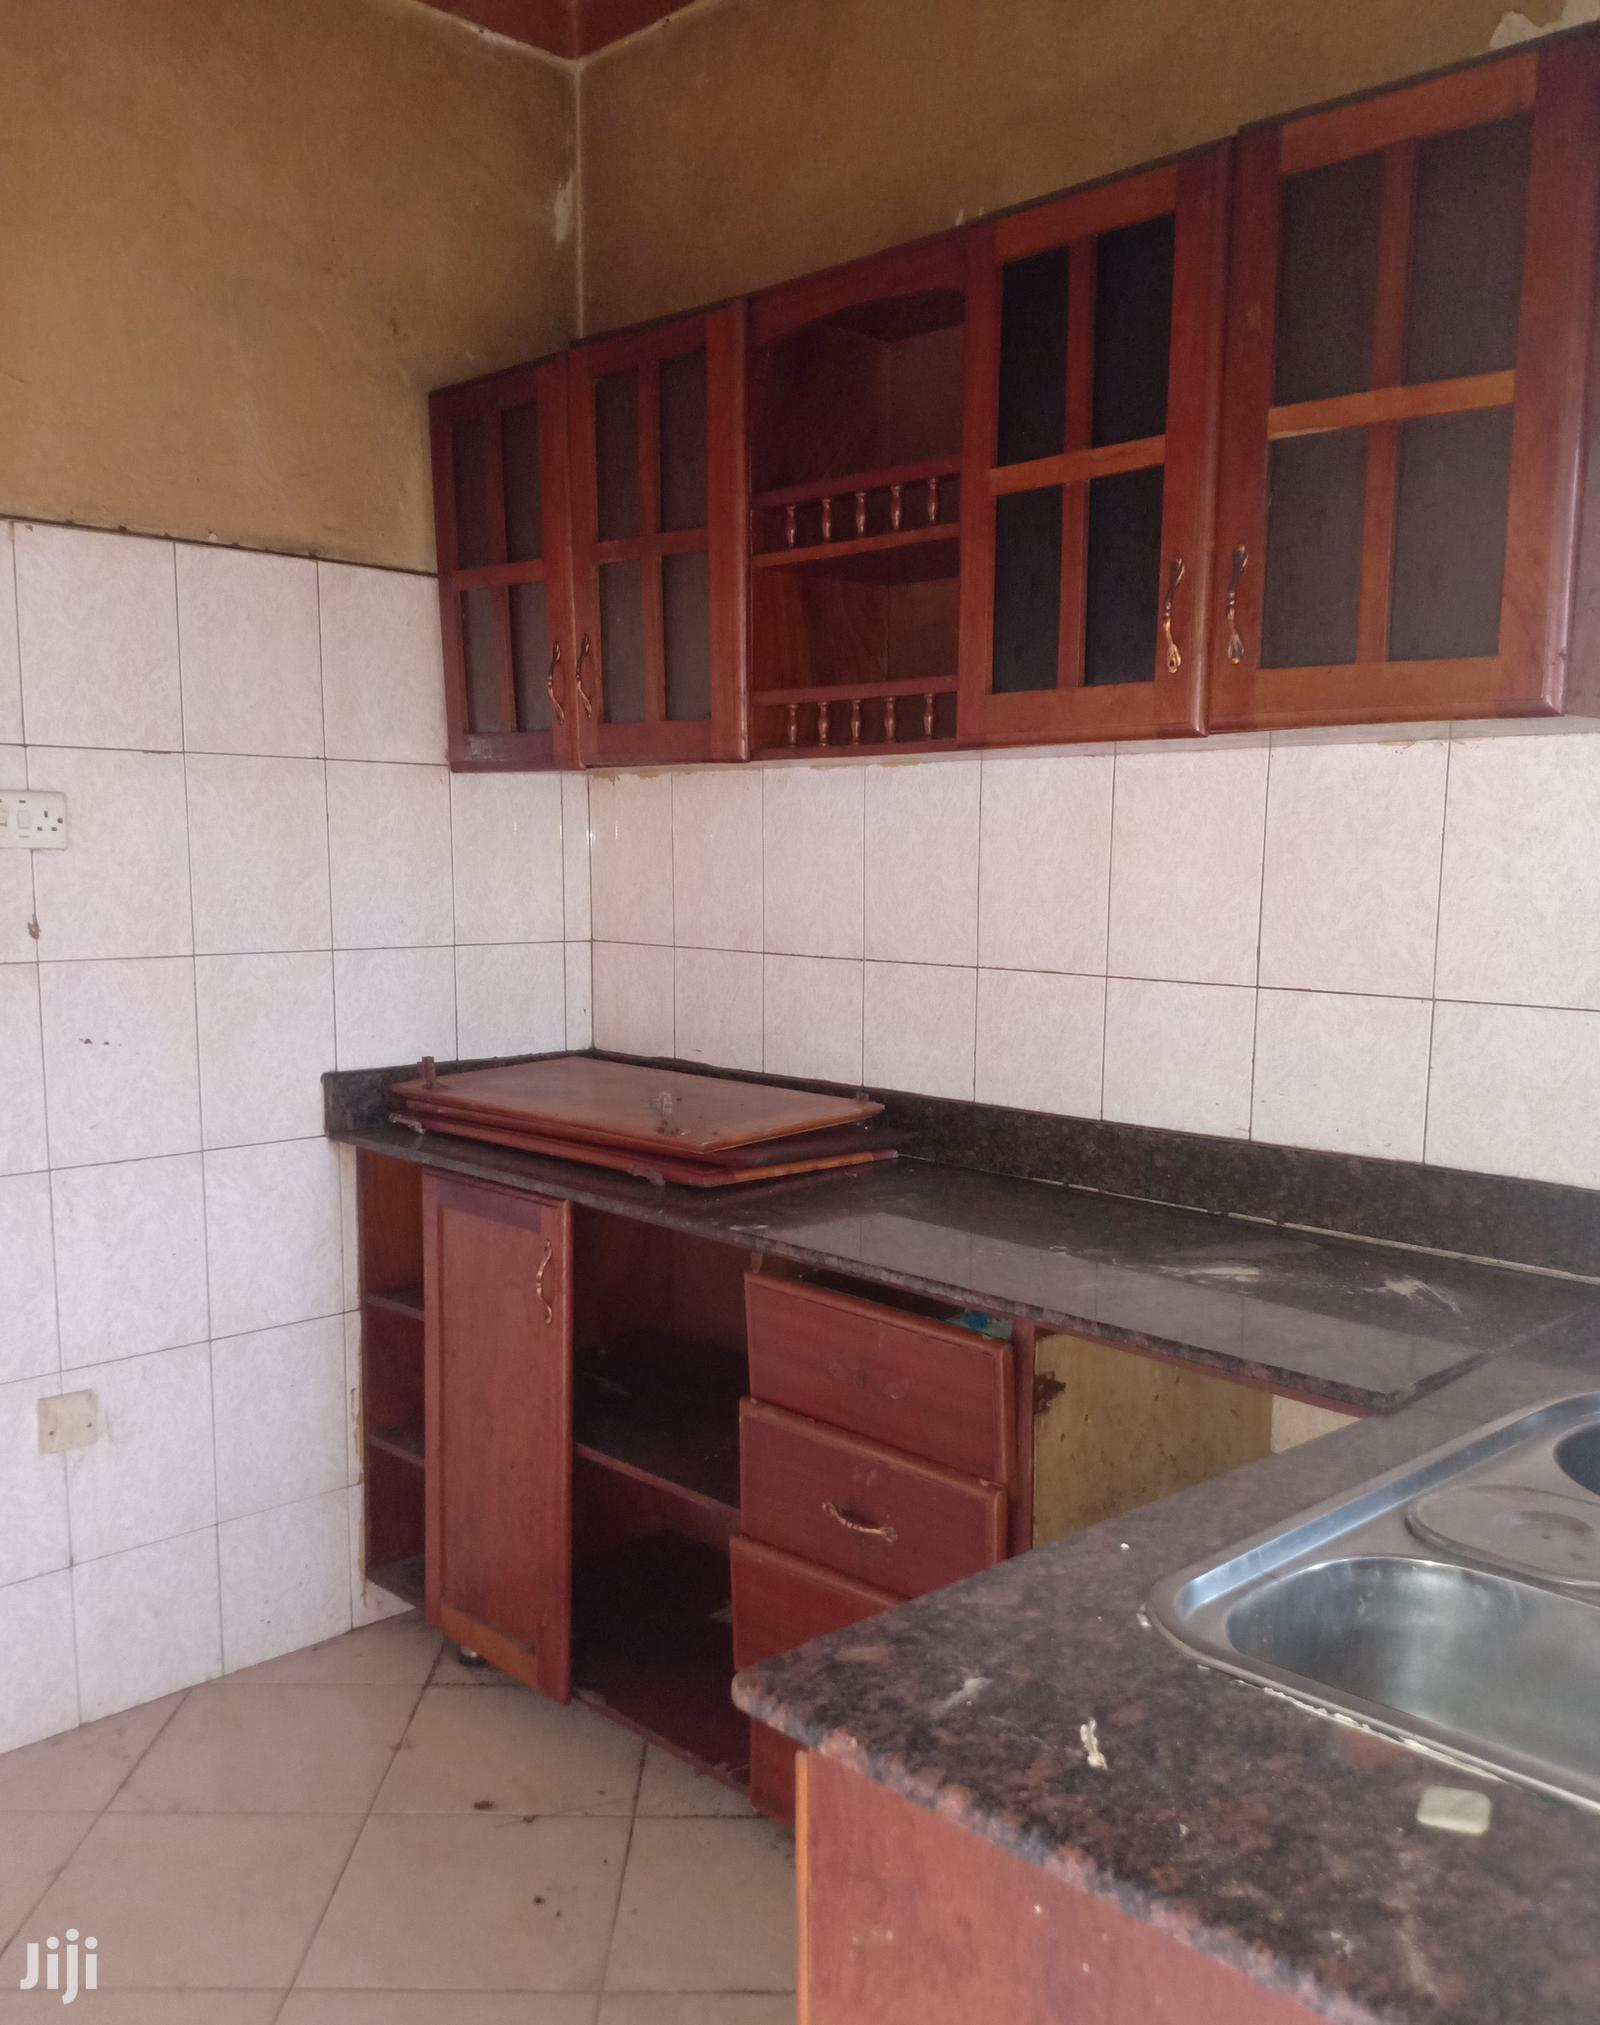 Namugongo 2 Bedroom House For Rent | Houses & Apartments For Rent for sale in Kampala, Central Region, Uganda